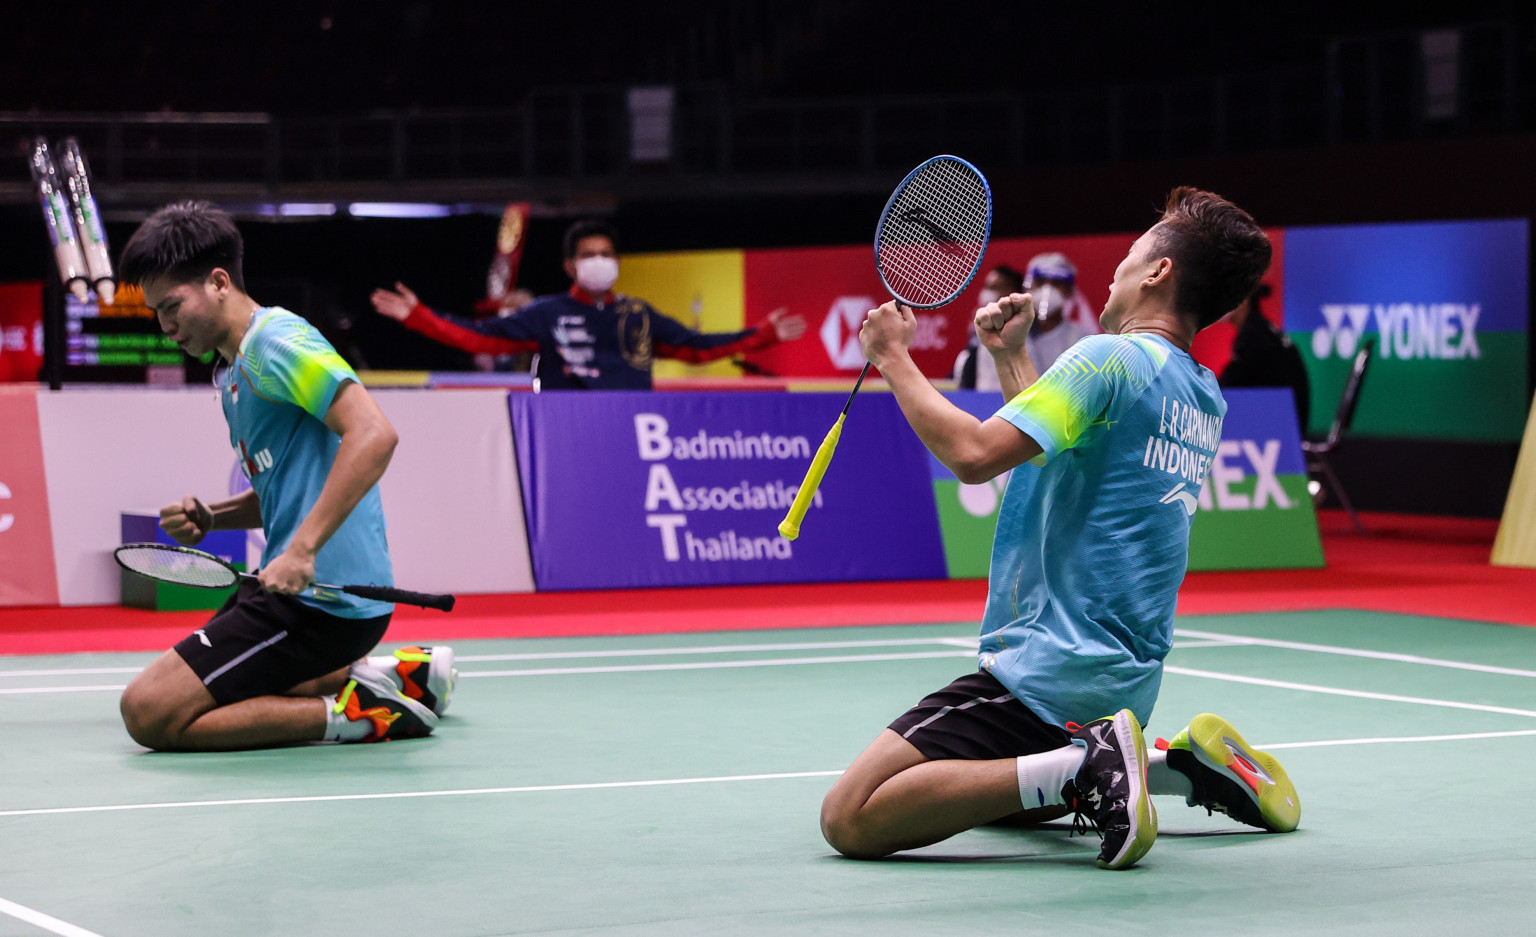 World junior champions knock out fifth seeds in Yonex Thailand Open men's doubles